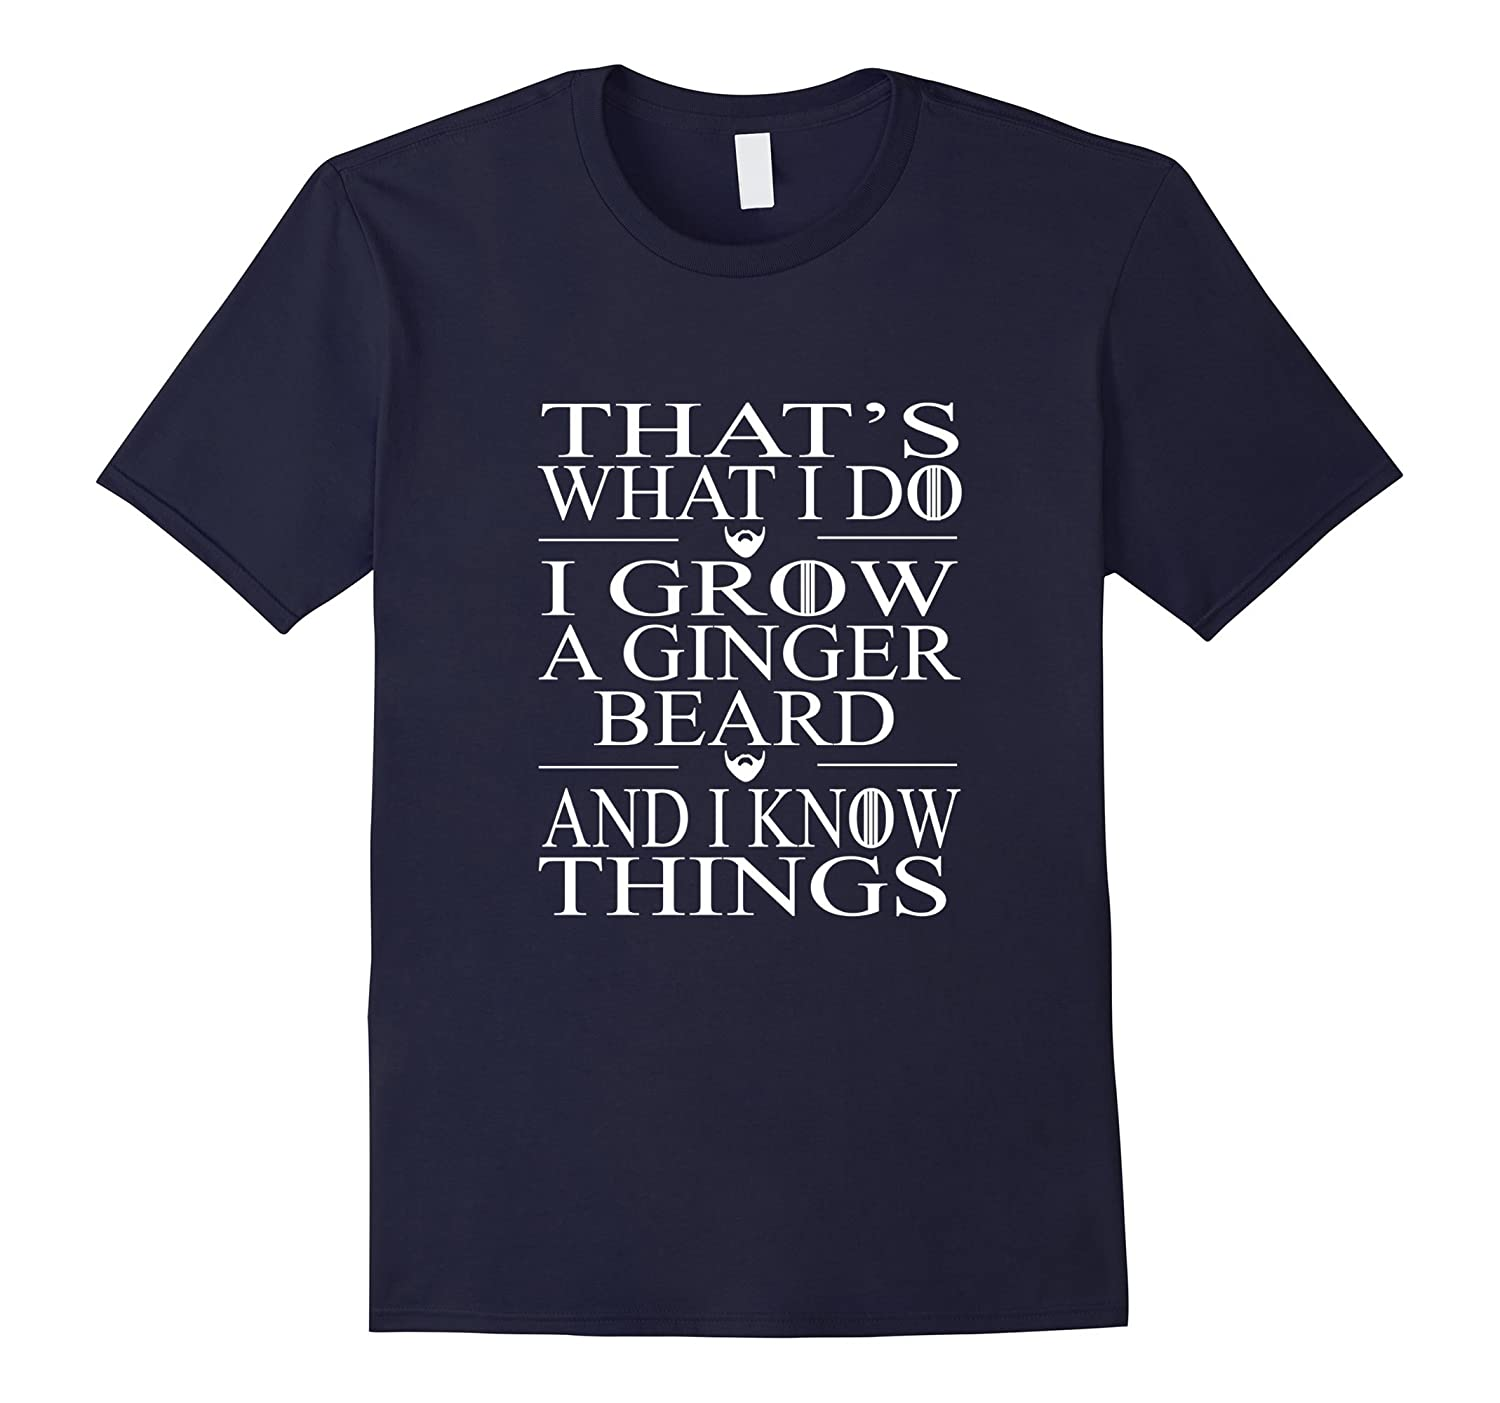 Thats What I Do I Grow Ginger Beard  I Know Things T Shirt-Vaci